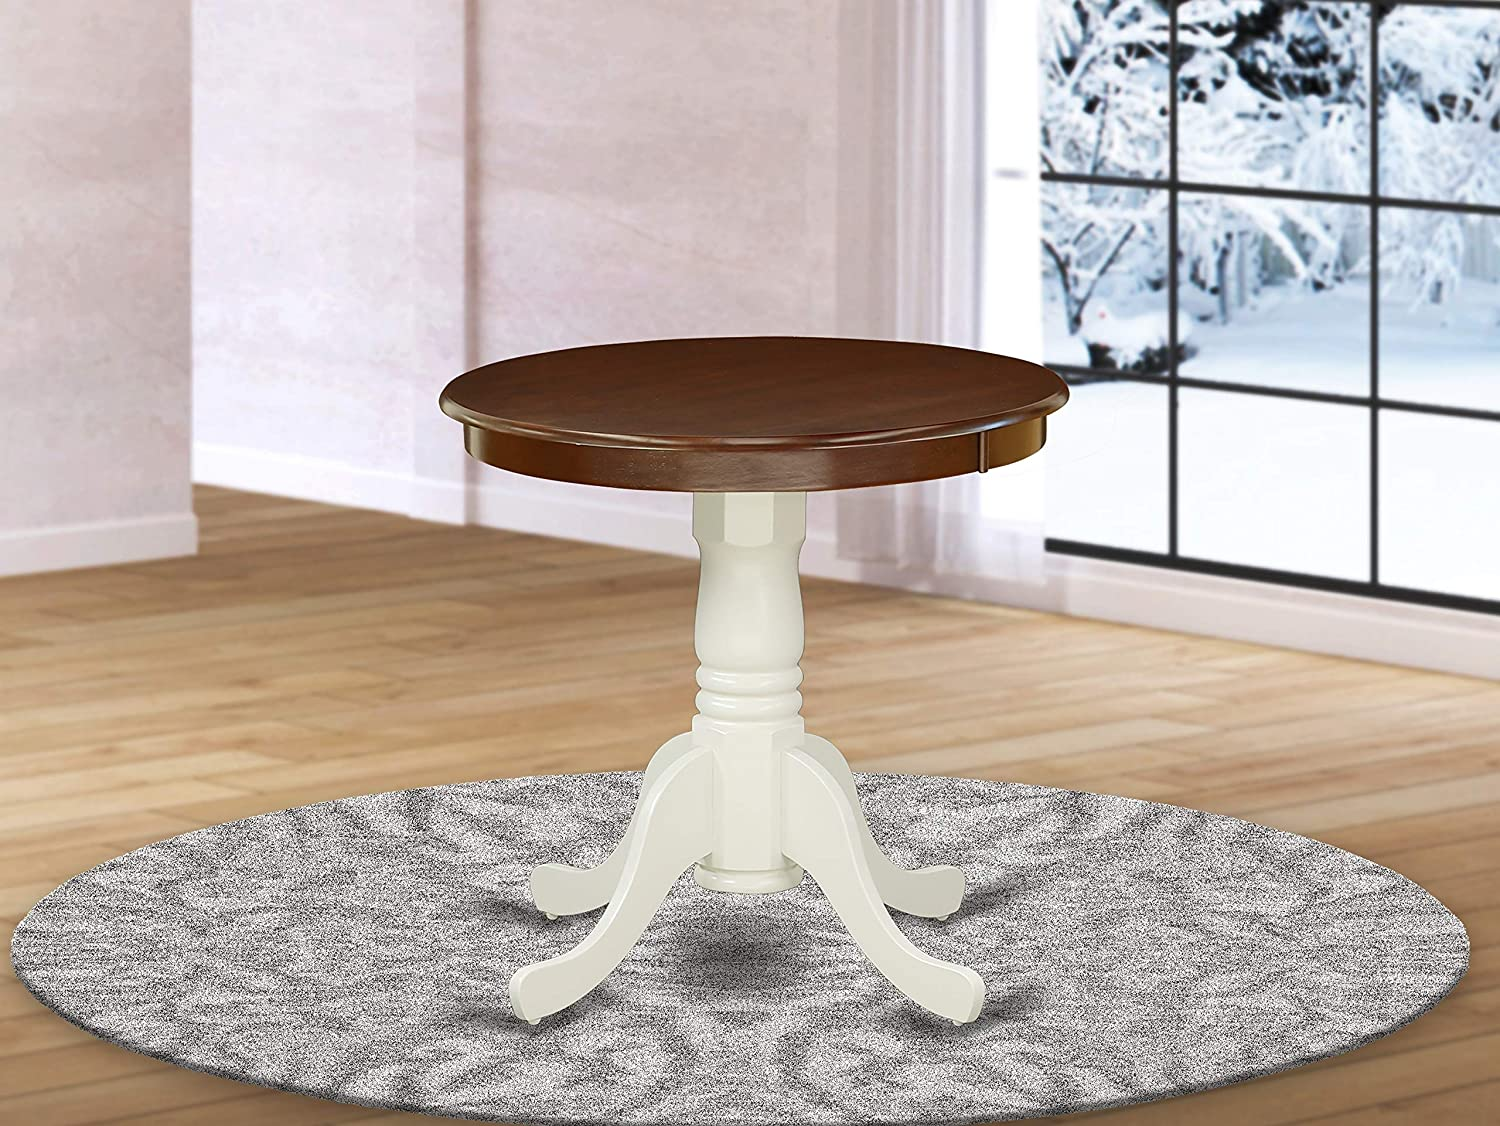 East West Furniture Edan Wood Kitchen Table - Walnut Table Top Surface and Linen White Finish legs Solid Wood Frame Kitchen Table